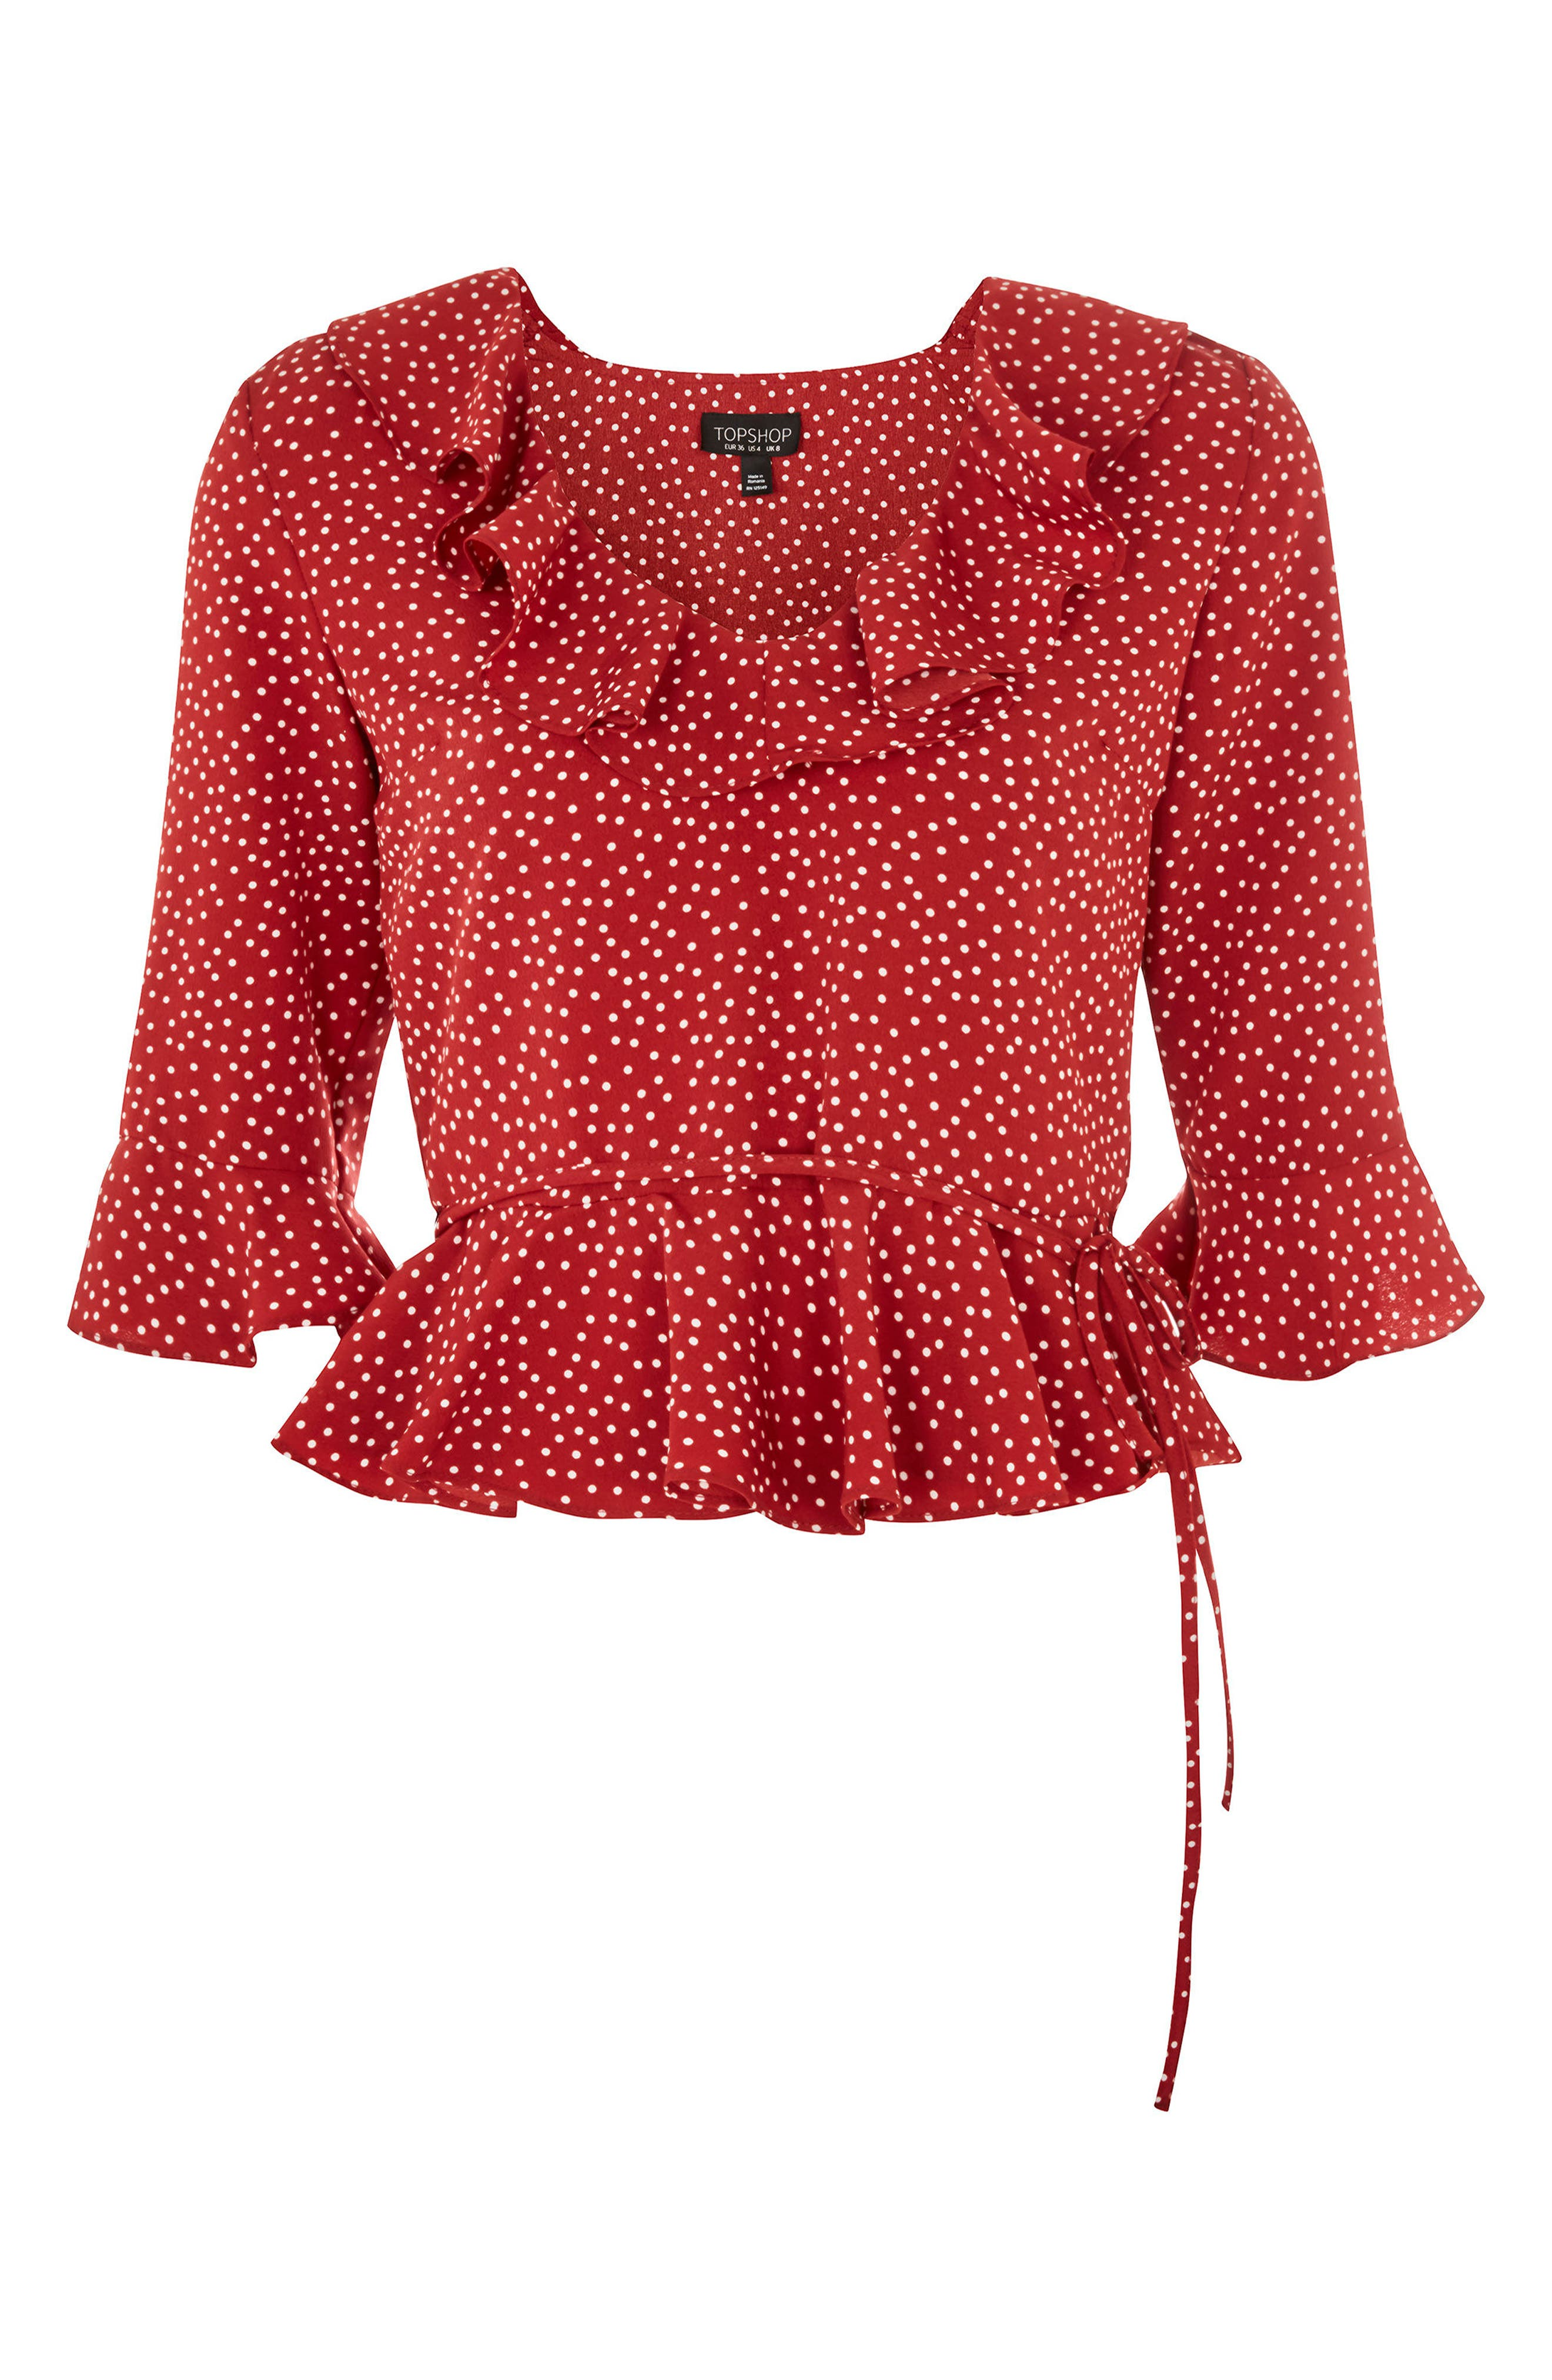 Phoebe Frilly Blouse,                             Alternate thumbnail 26, color,